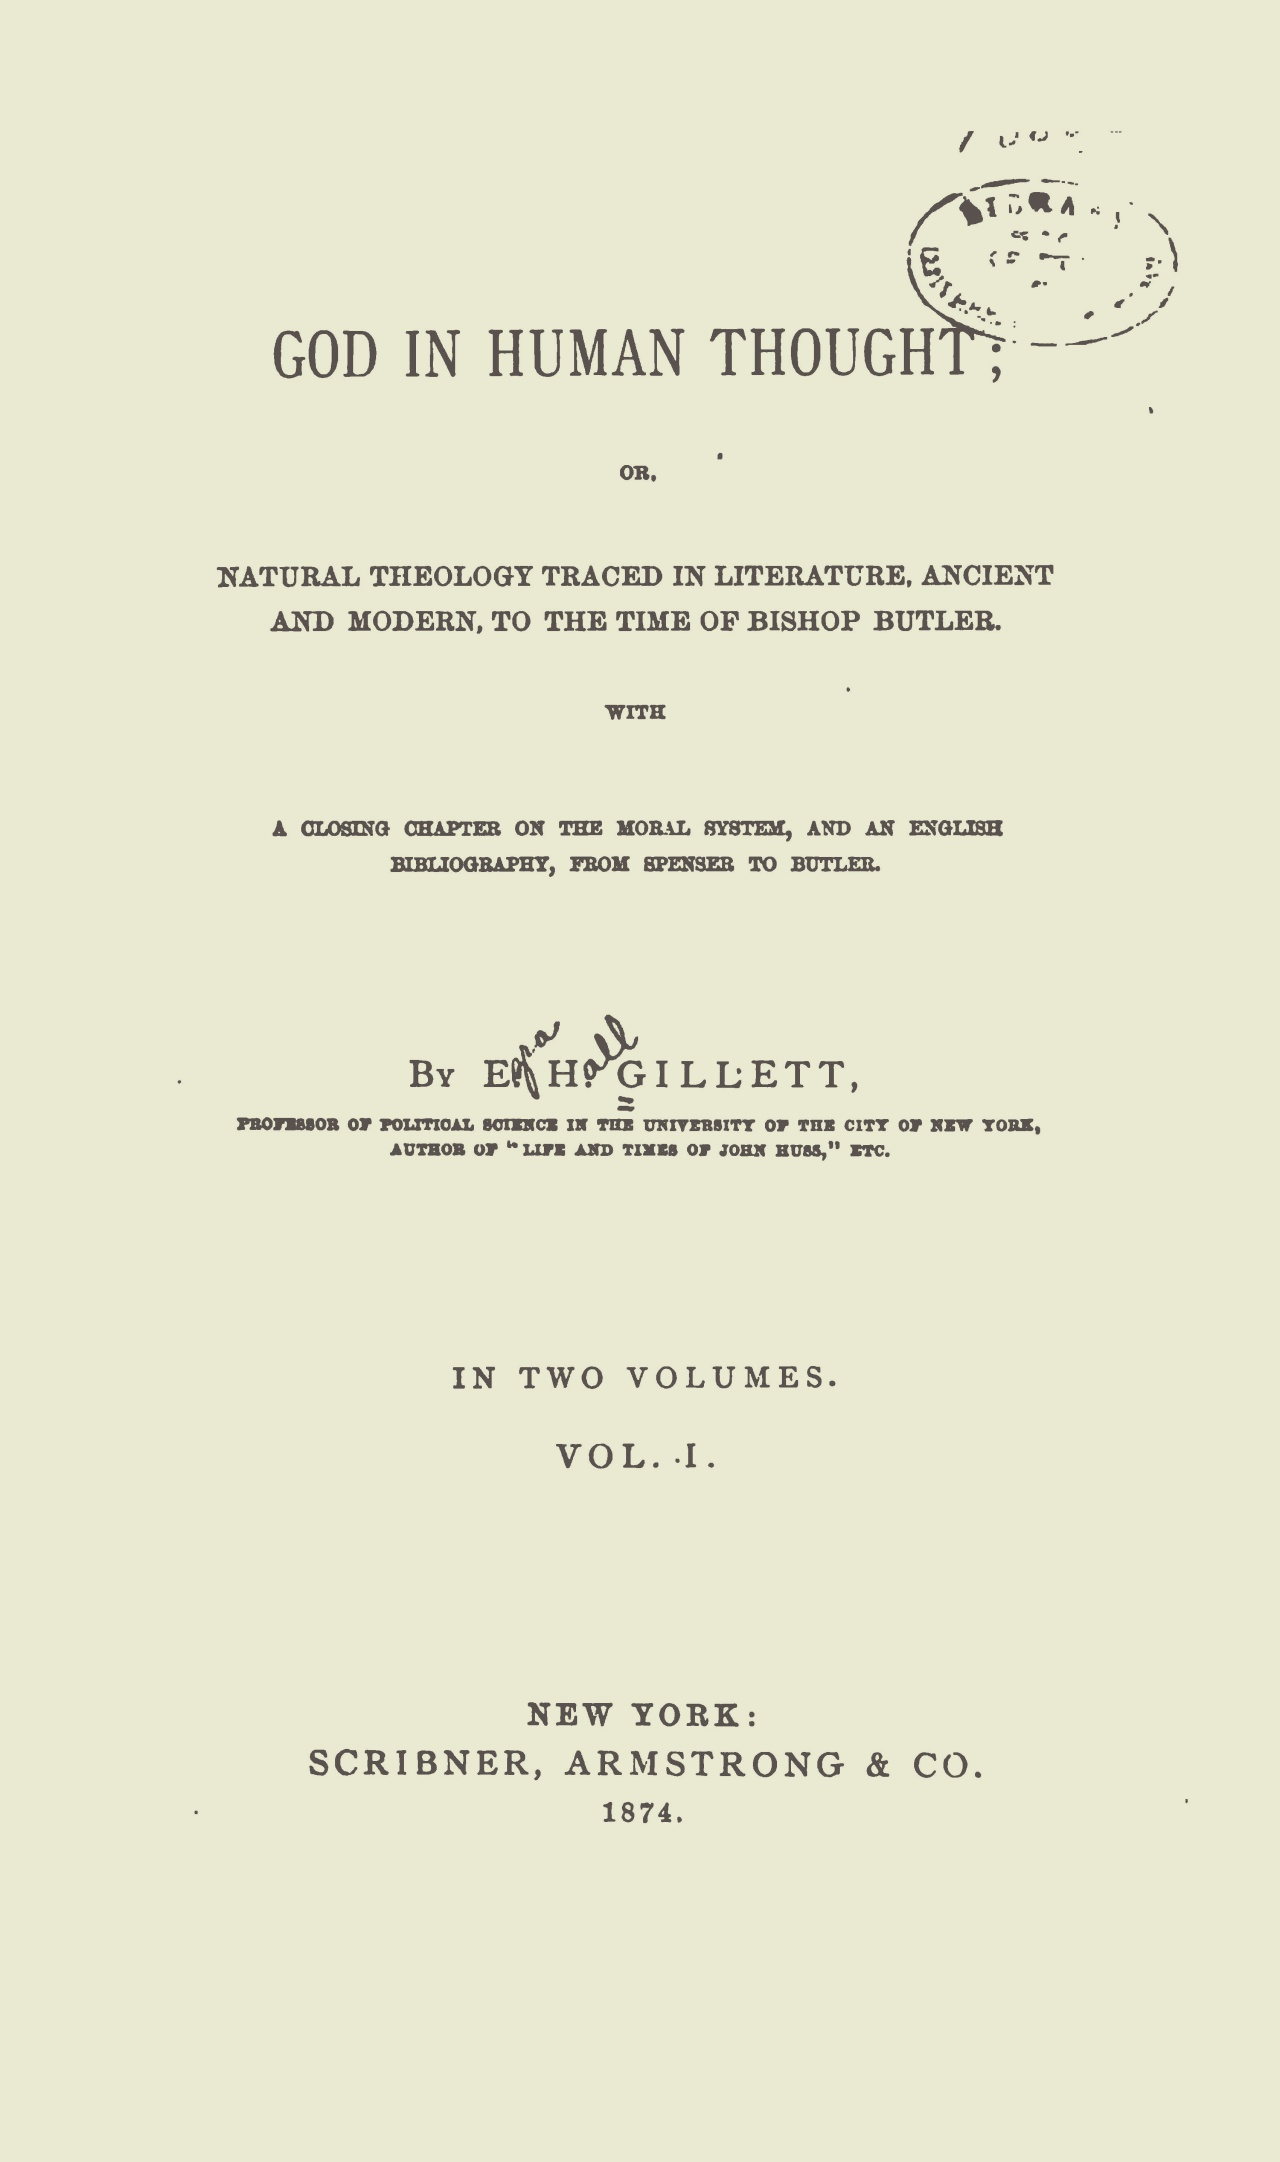 Gillett, Ezra Hall, God in Human Thought Title Page.jpg